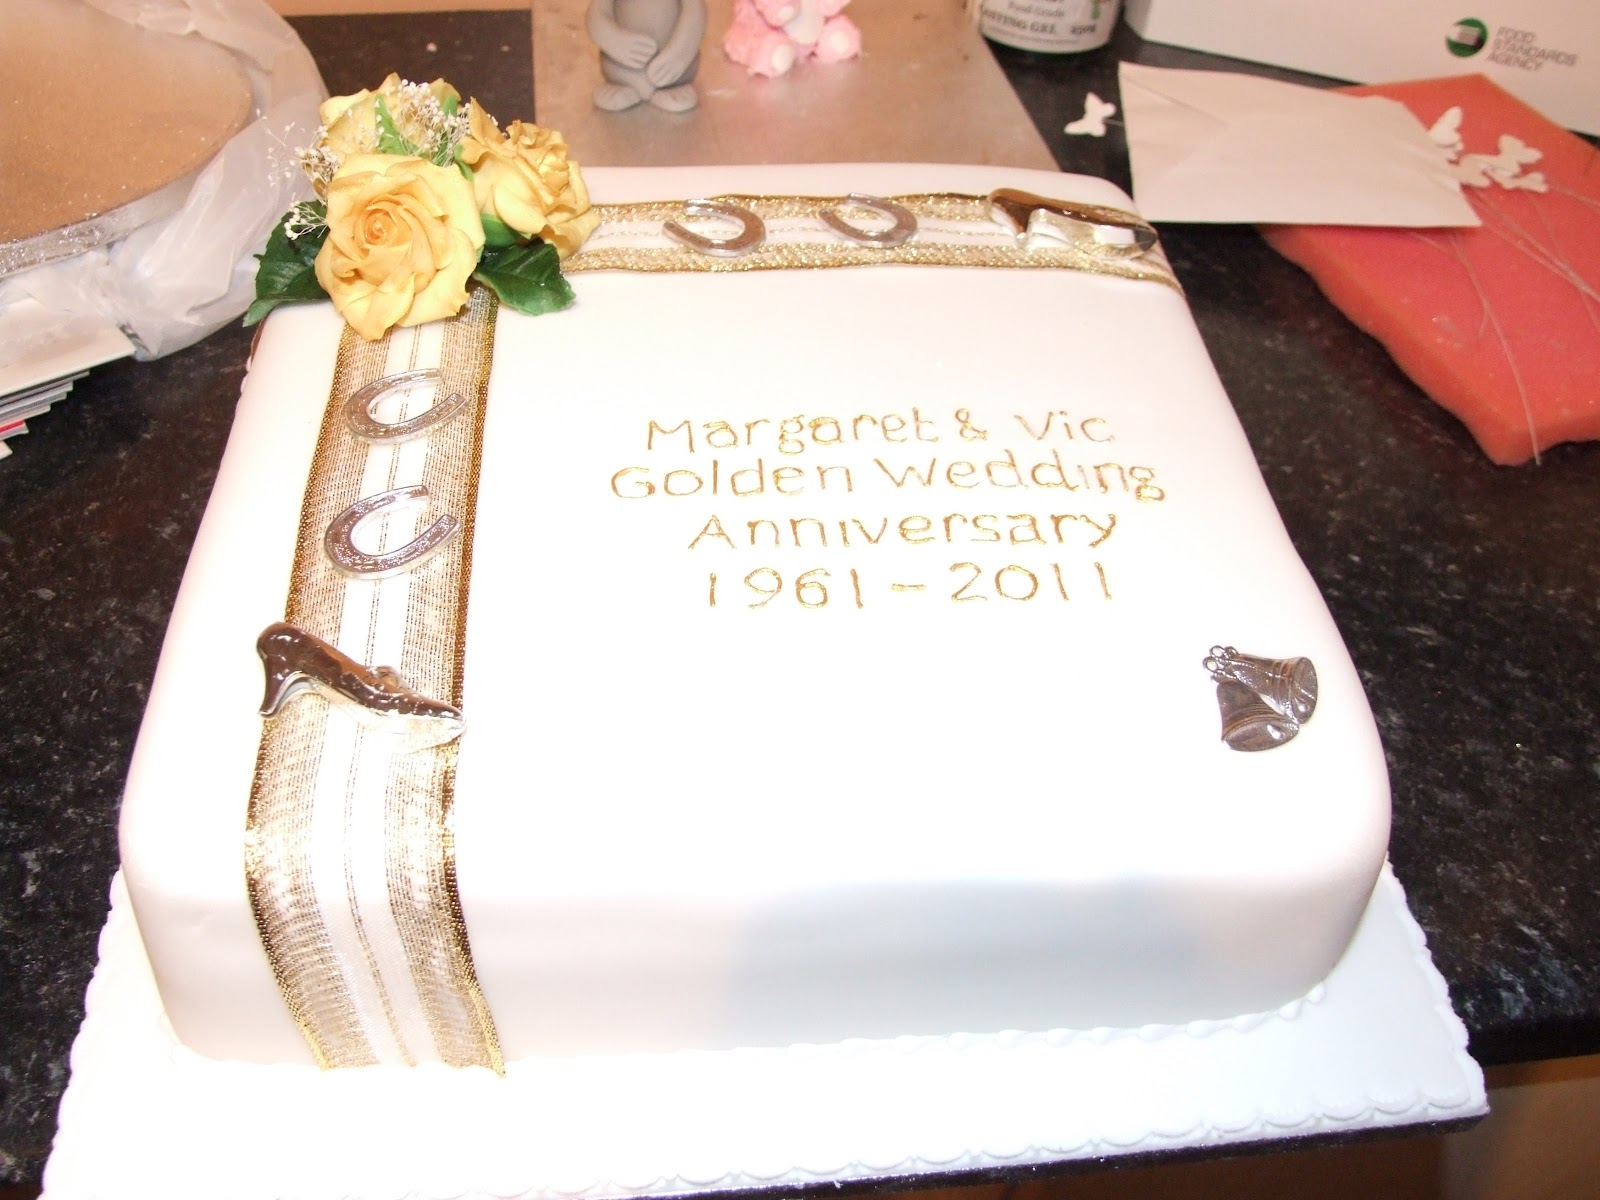 Special Occasion Cakes: Golden Wedding cake